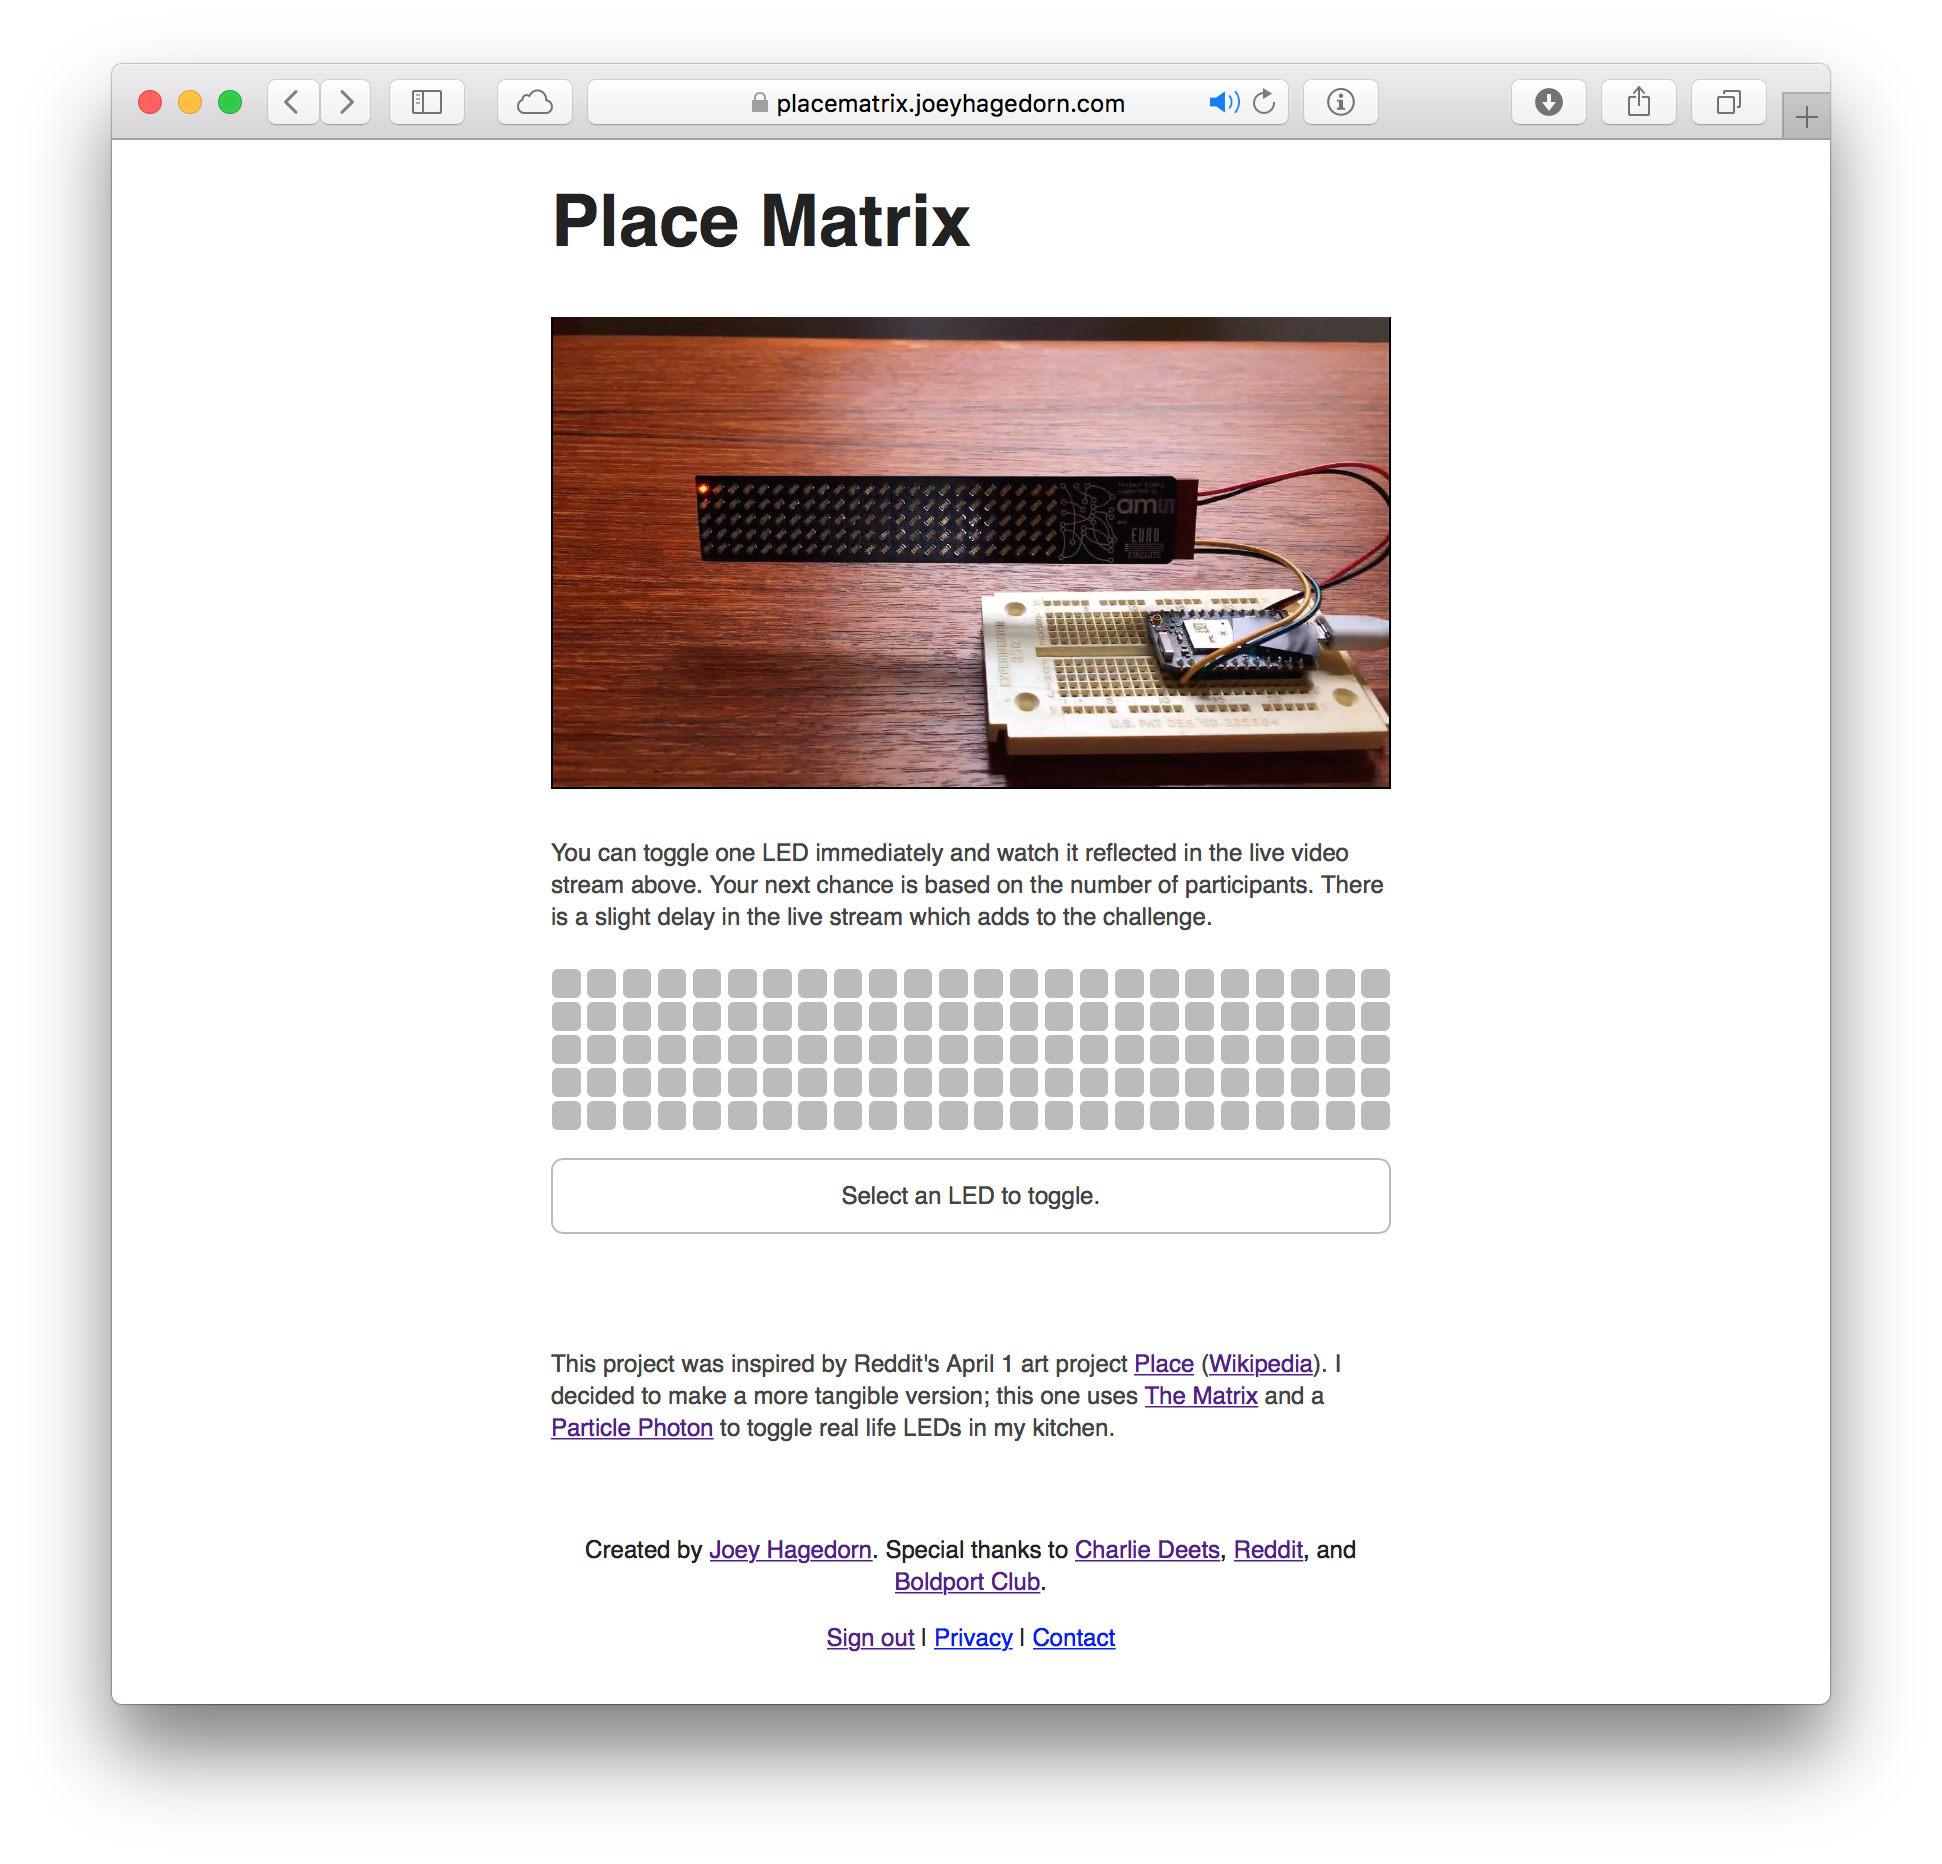 Place Matrix